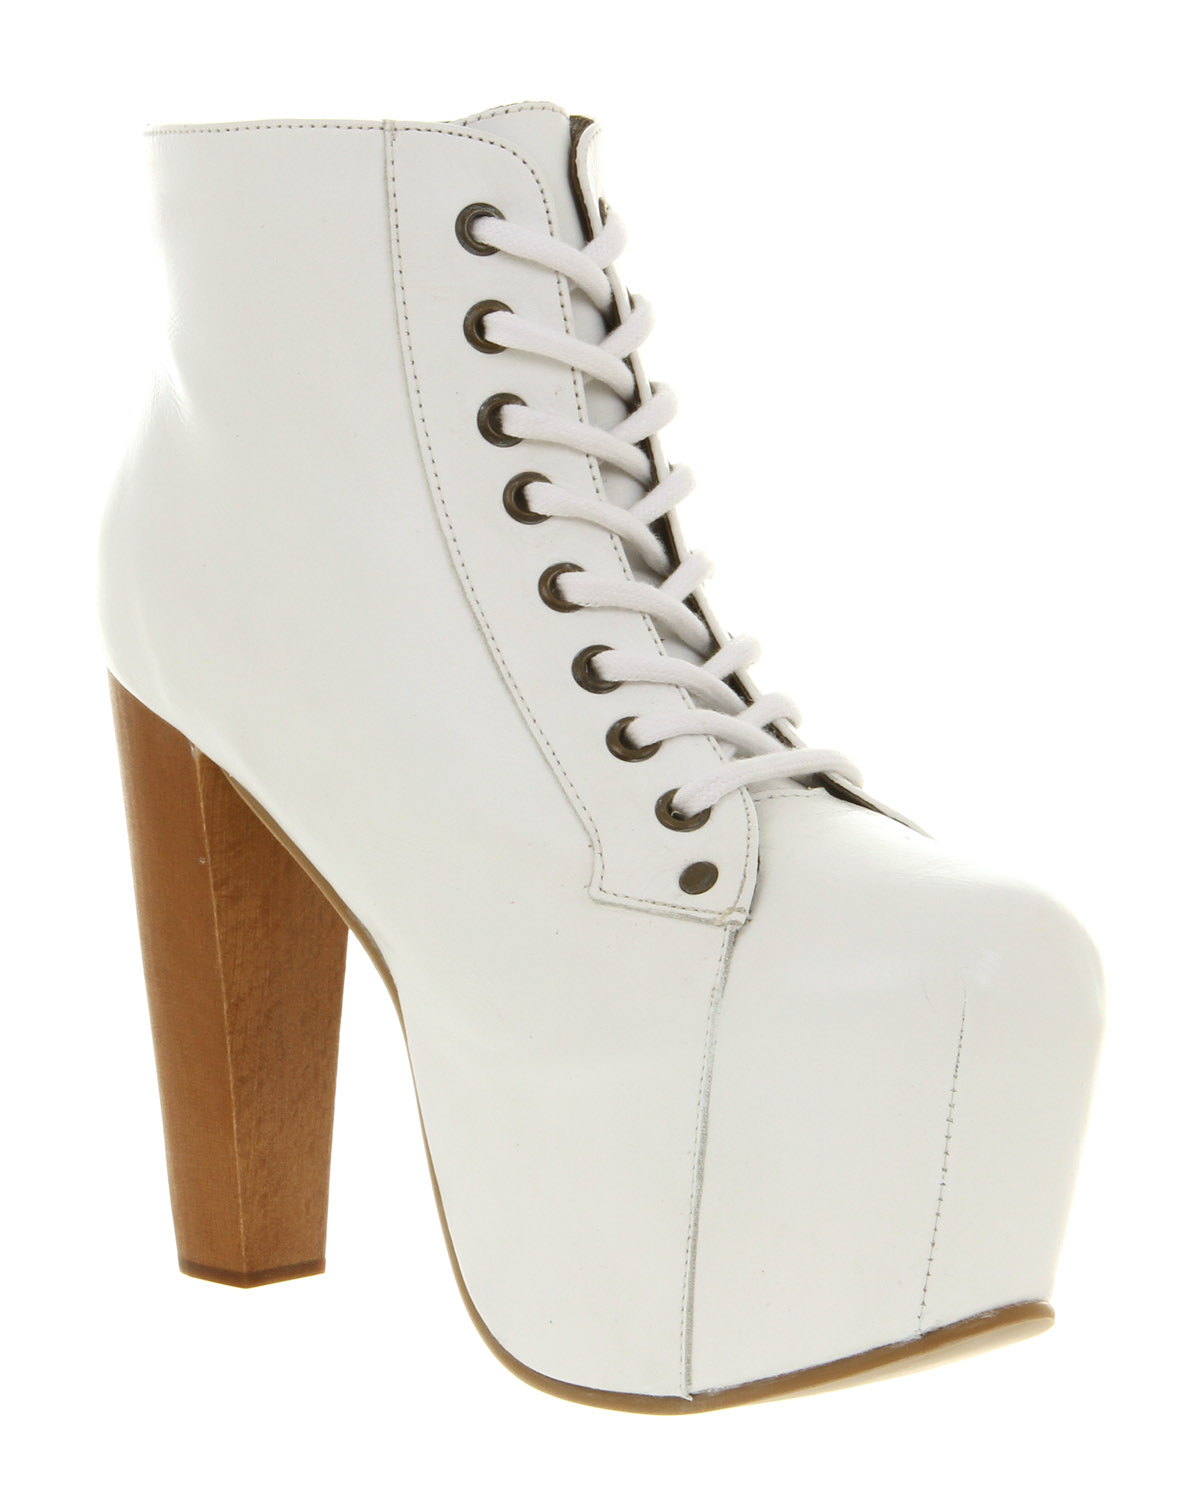 Jeffrey campbell lita platform ankle boot white leather in white lyst - Jeffrey campbell lita platform boots ...